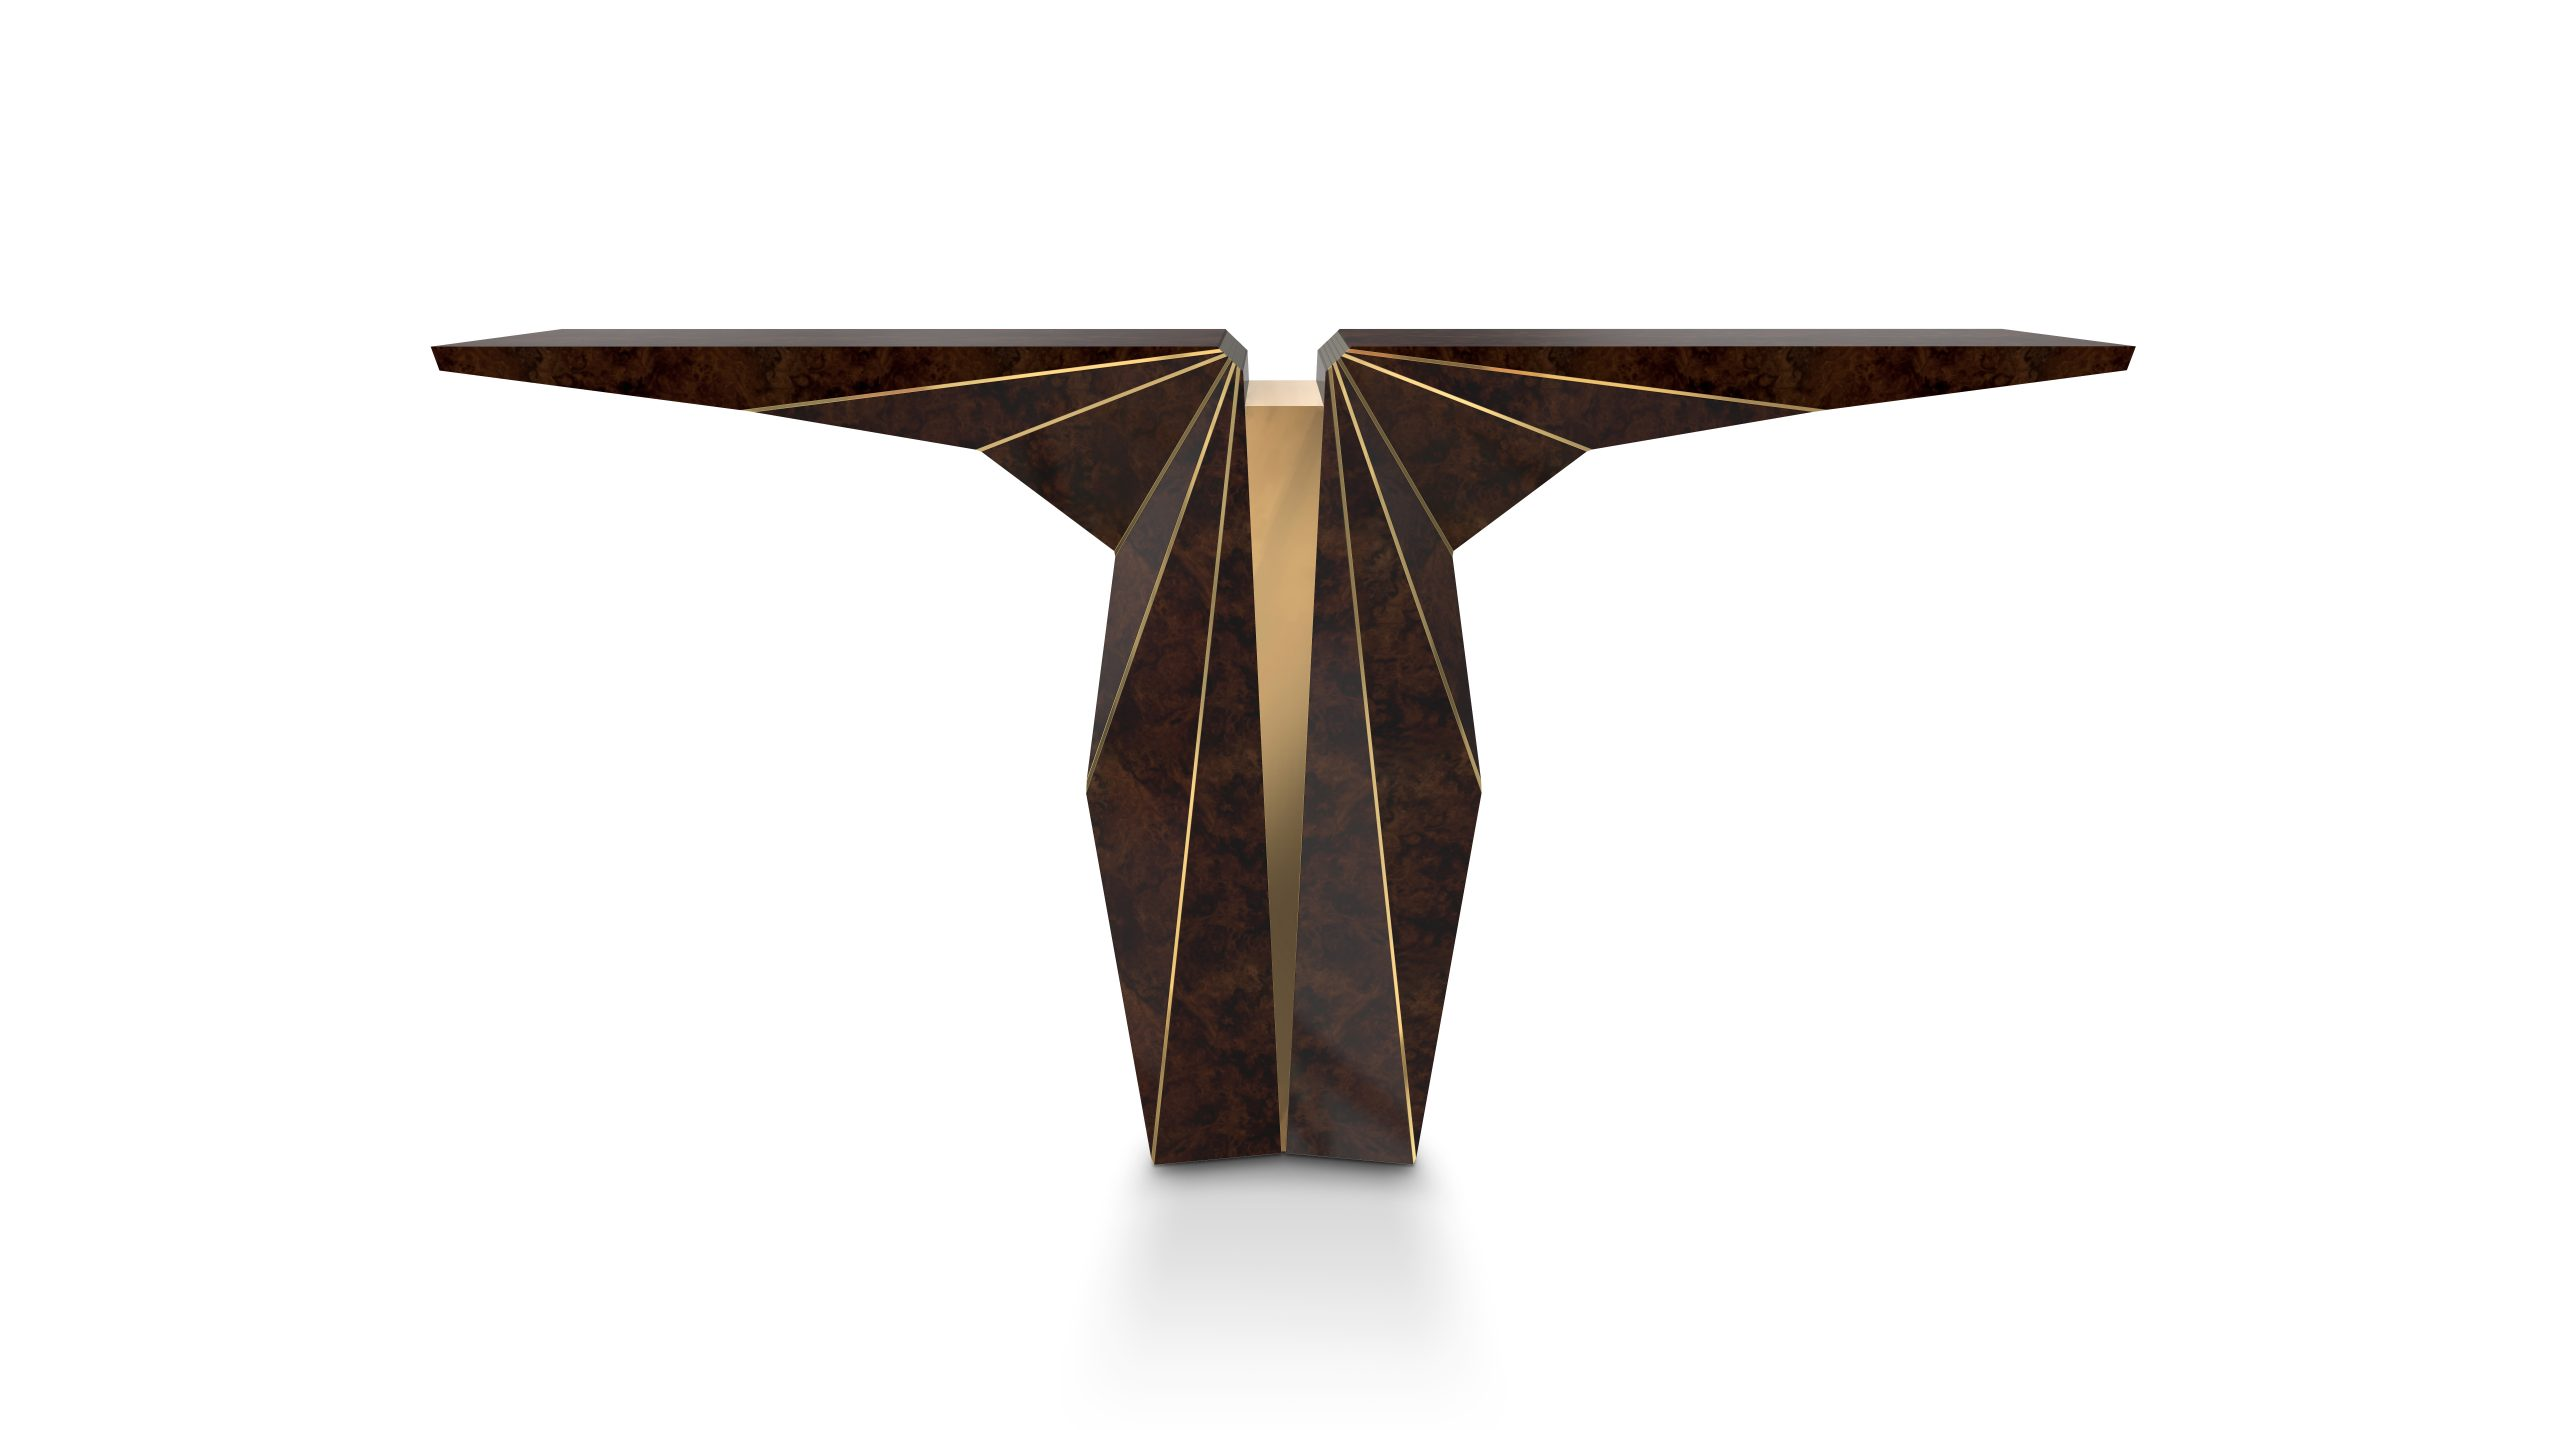 Luxury Furniture: The Suspicion Wood Console Top Exhibitors at Decorex Top Exhibitors at Decorex International 2018 Suspicion Console frente scaled Top Exhibitors at Decorex Top Exhibitors at Decorex International 2018 Suspicion Console frente scaled